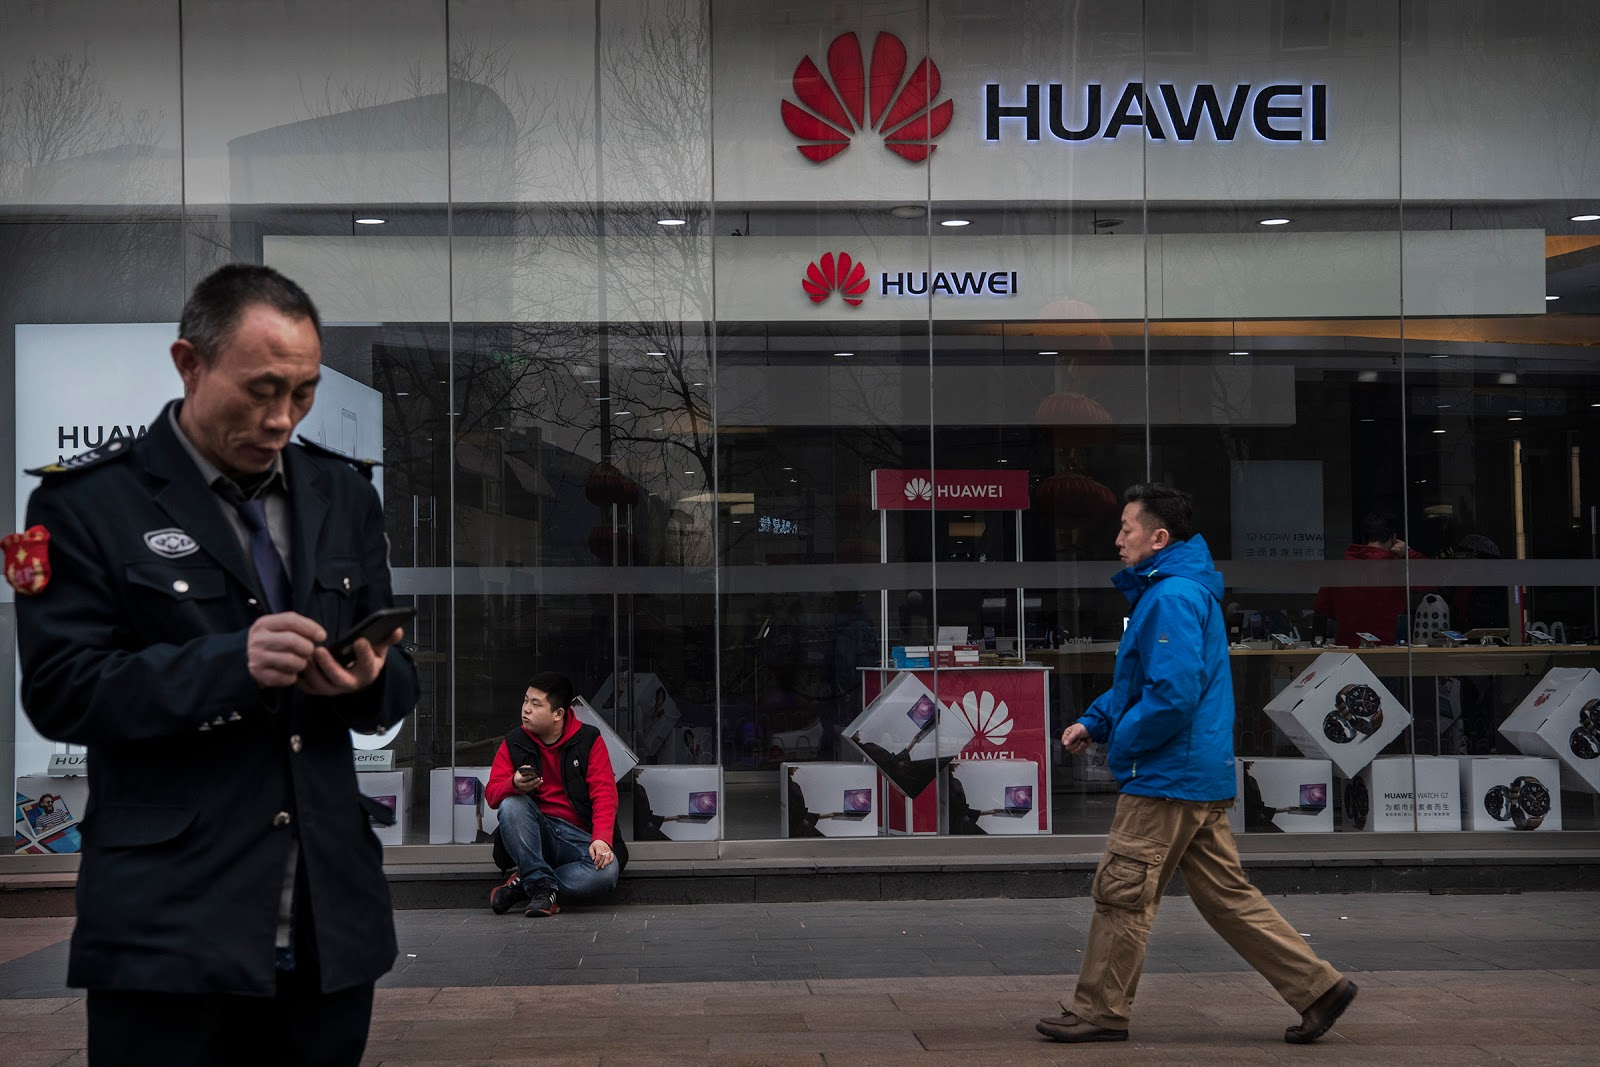 Trump Claimed Huawei Owned By Chinese Military